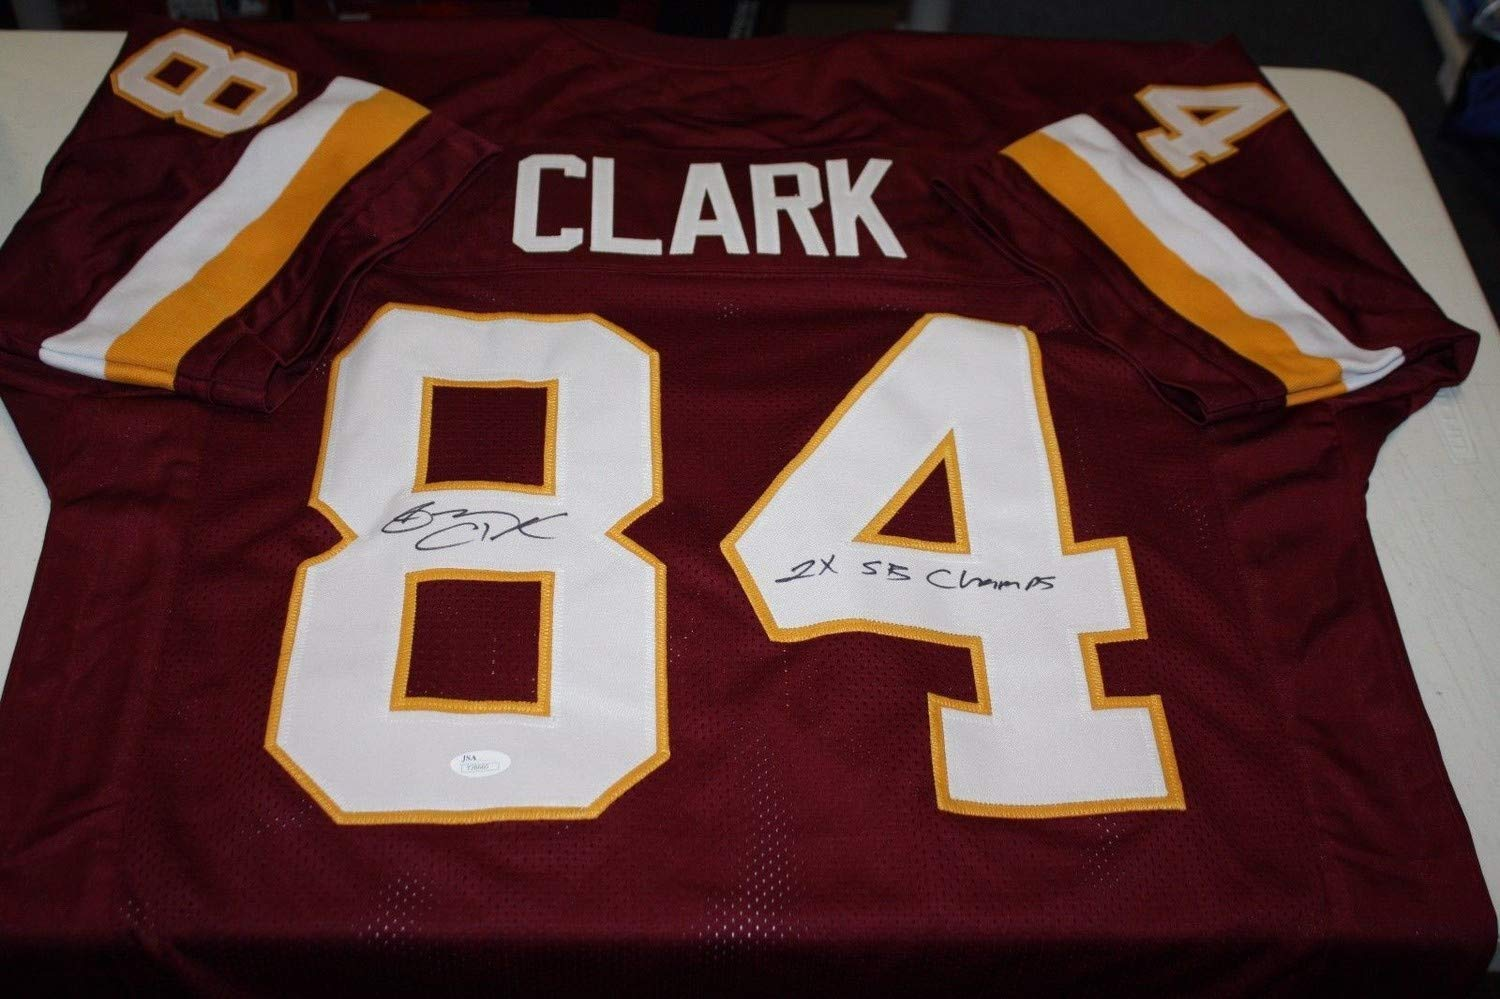 Washington Redskins Gary Clark #84 Autographed Signed Custom Home Jersey 2X Super Bowl JSA Authentic